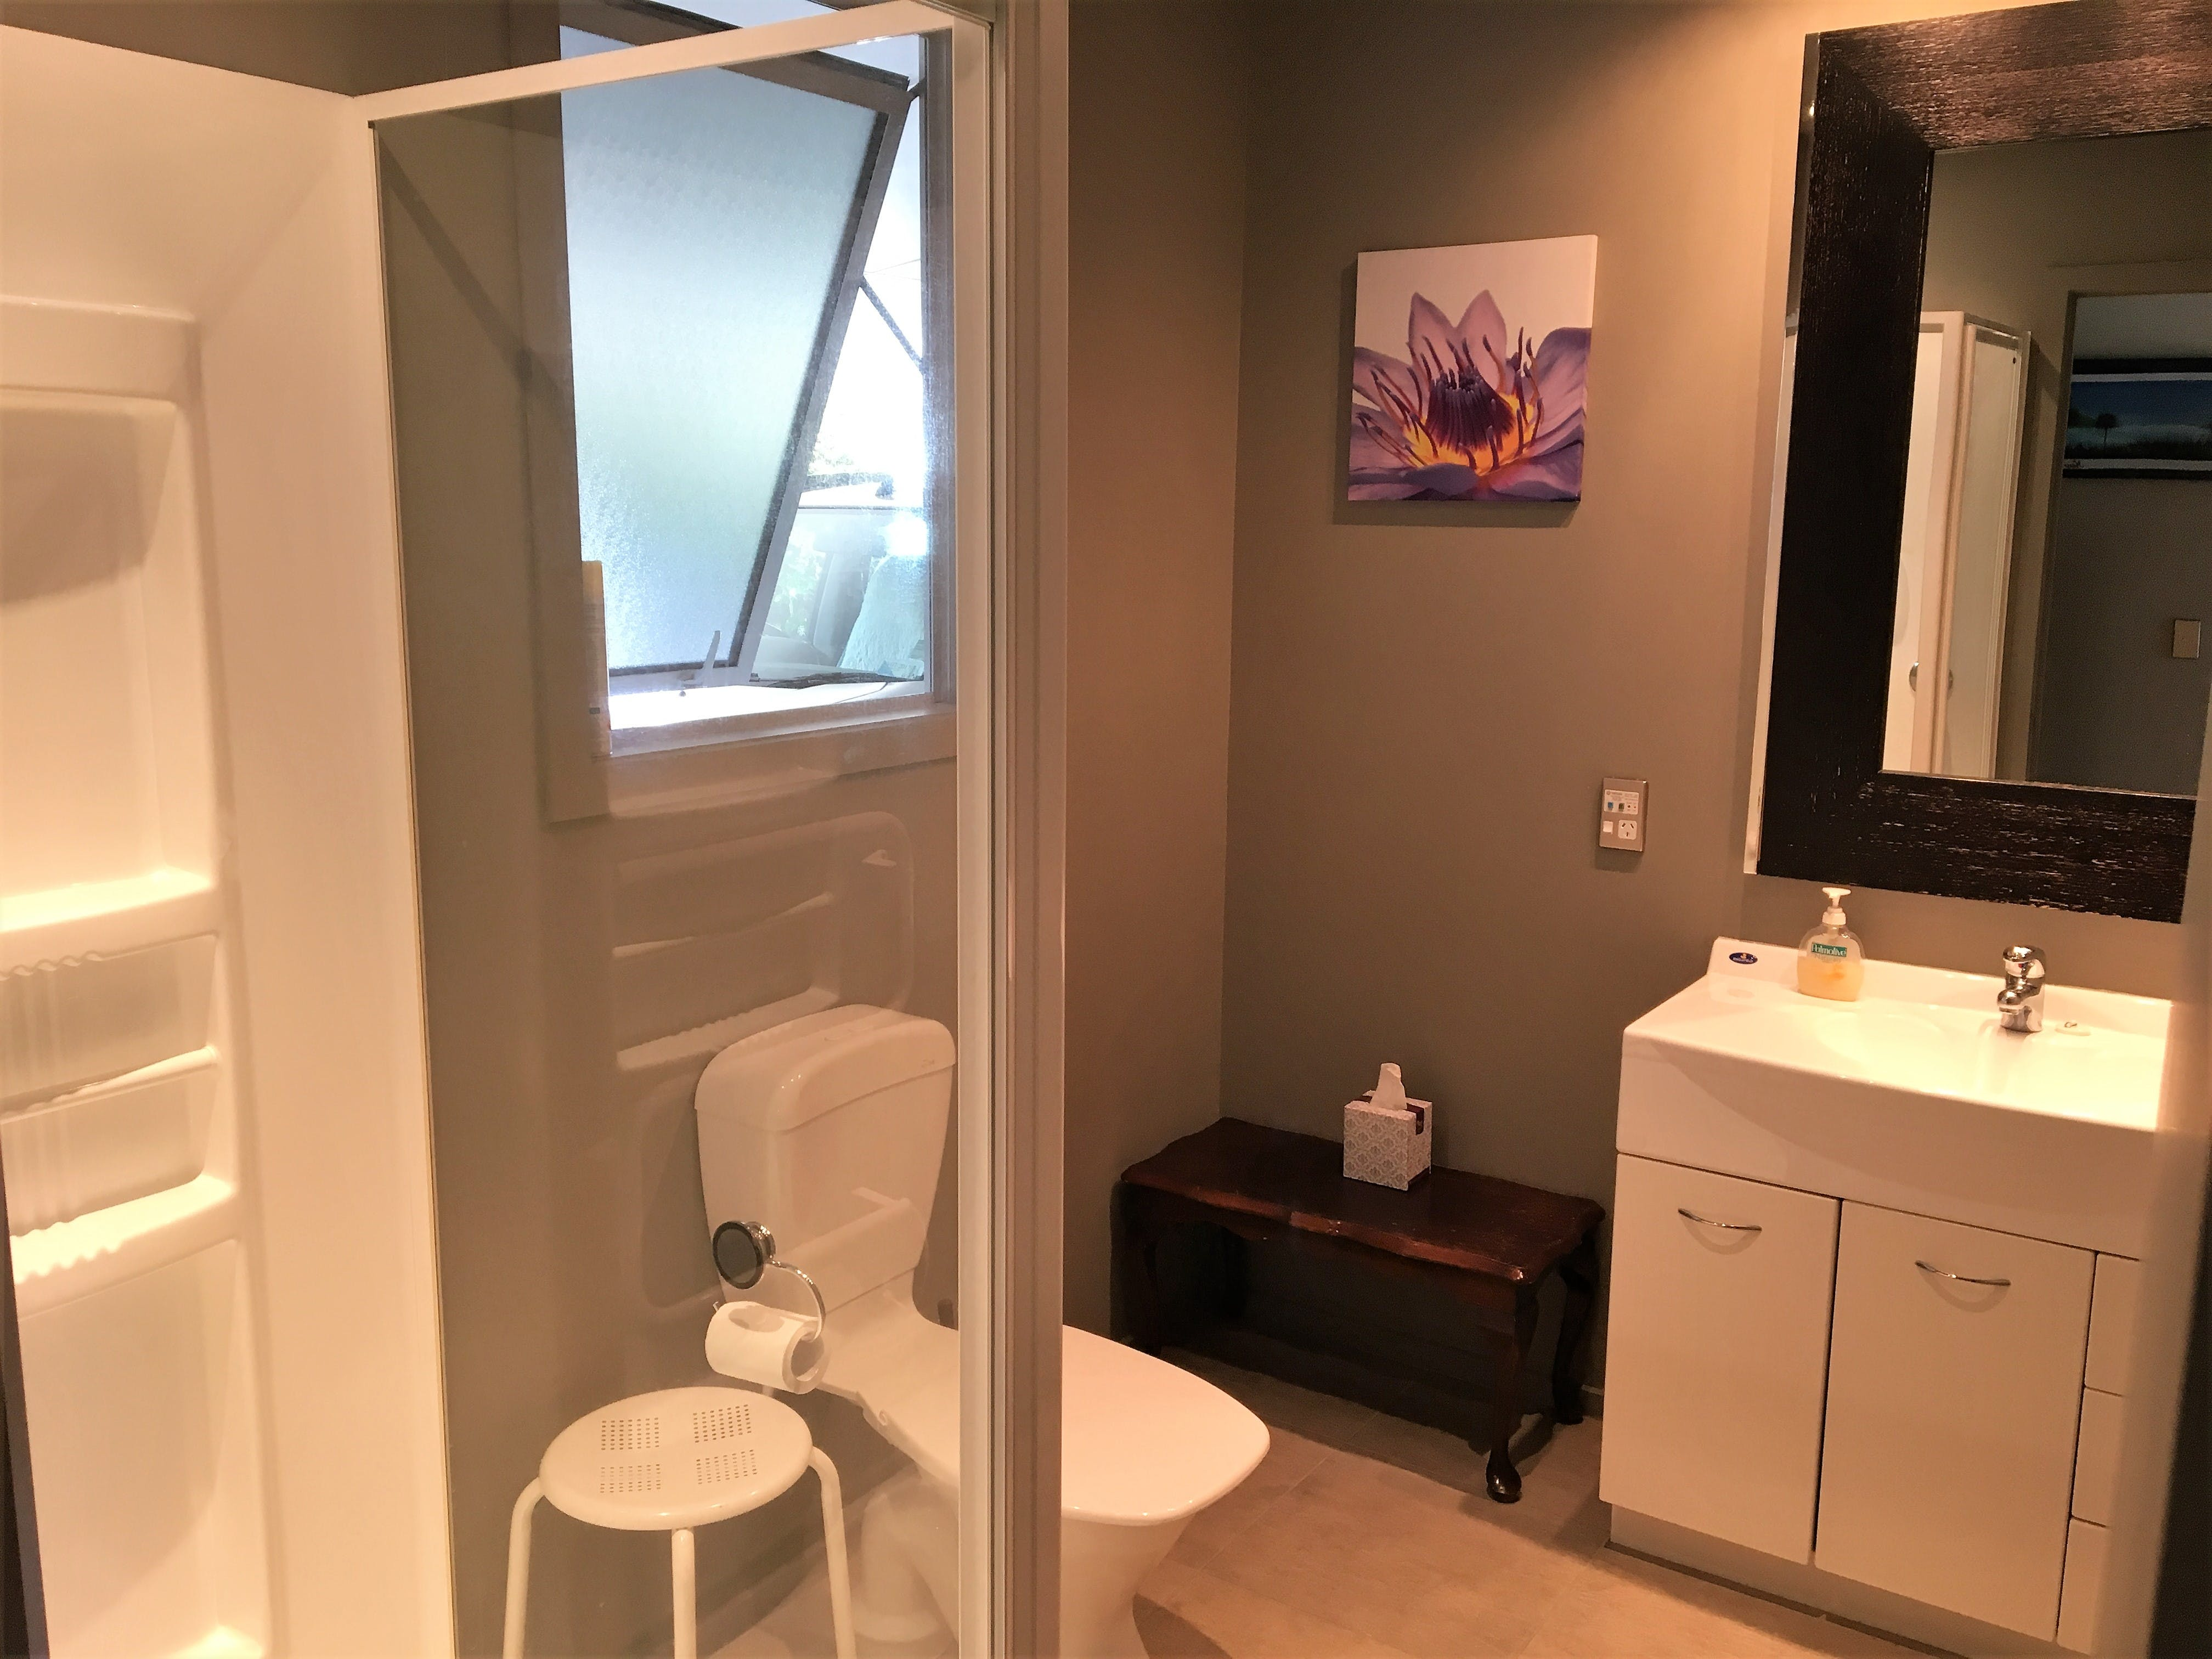 3 bedroom townhouse bathroom